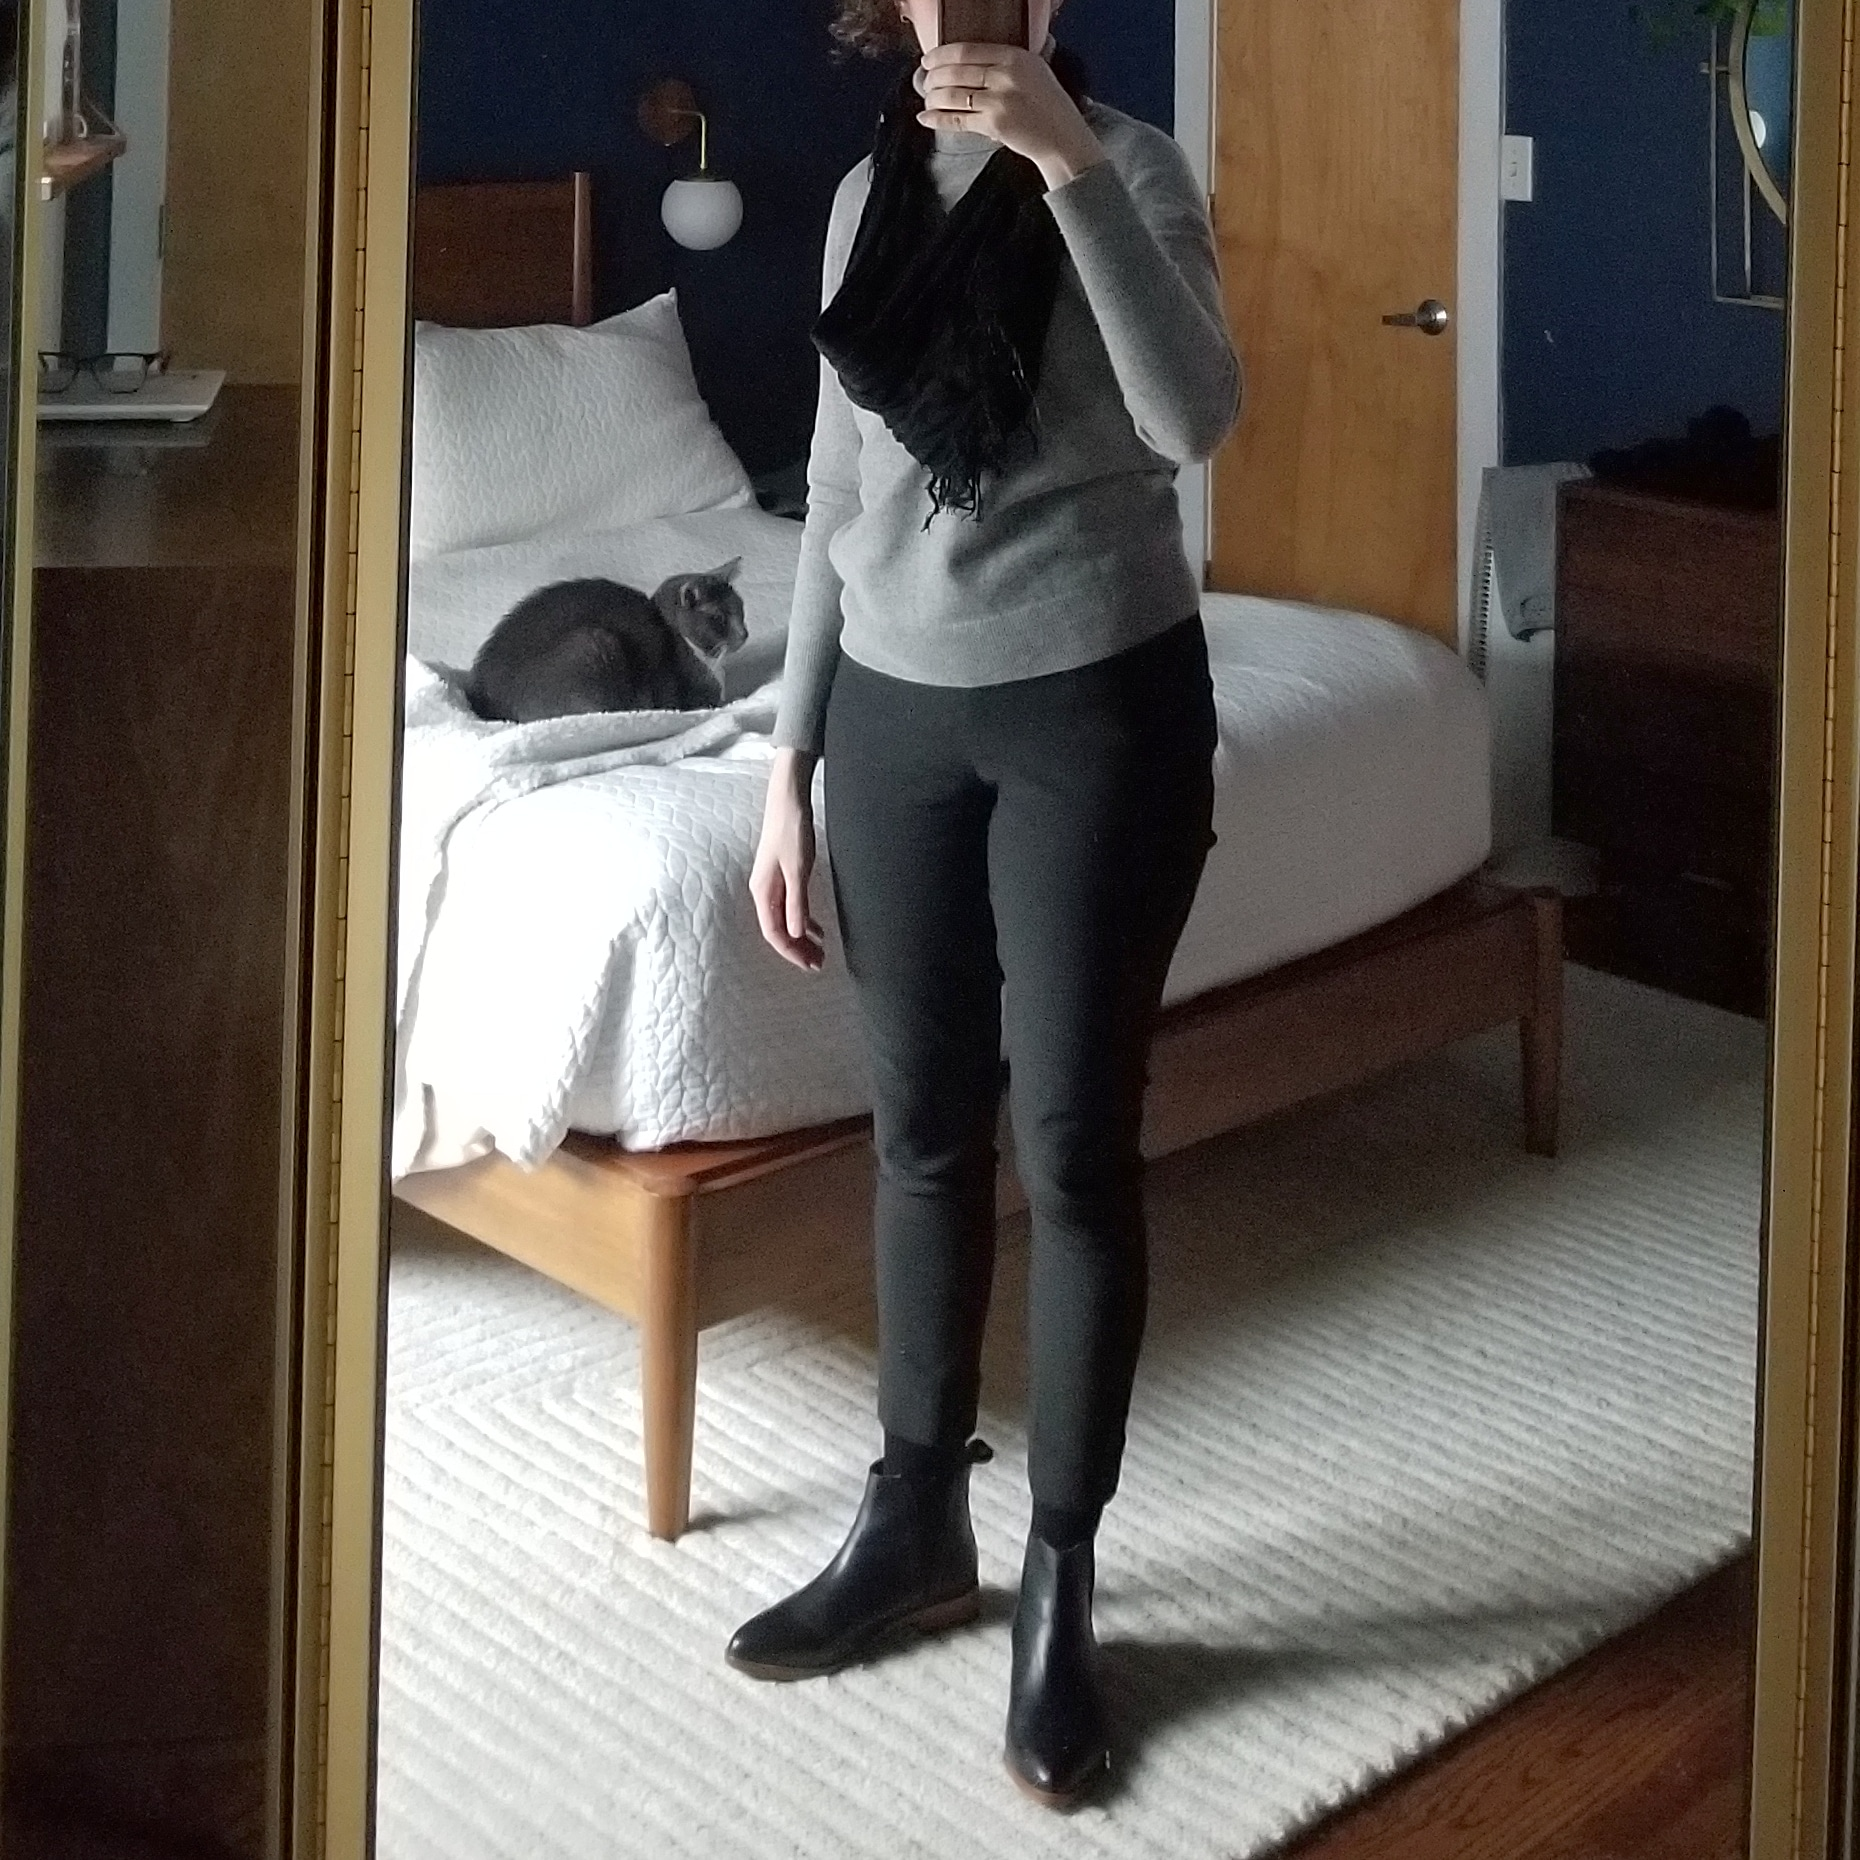 Monday - January 29, 2018Wearing these new-to-me Nisolo chelsea boots for the first time since getting them from the cobbler this weekend. They are a little snug in the toes but not uncomfortably so. The ES cecilia pants I'm having second thoughts on now that I've worn them out and about several times. I can't get over the tightness in the calves! It's fine if I situate the pants while standing, but if I sit down then stand up they get caught up at the knees and I find myself wanting to tug the hems back down. Considering selling or trading.